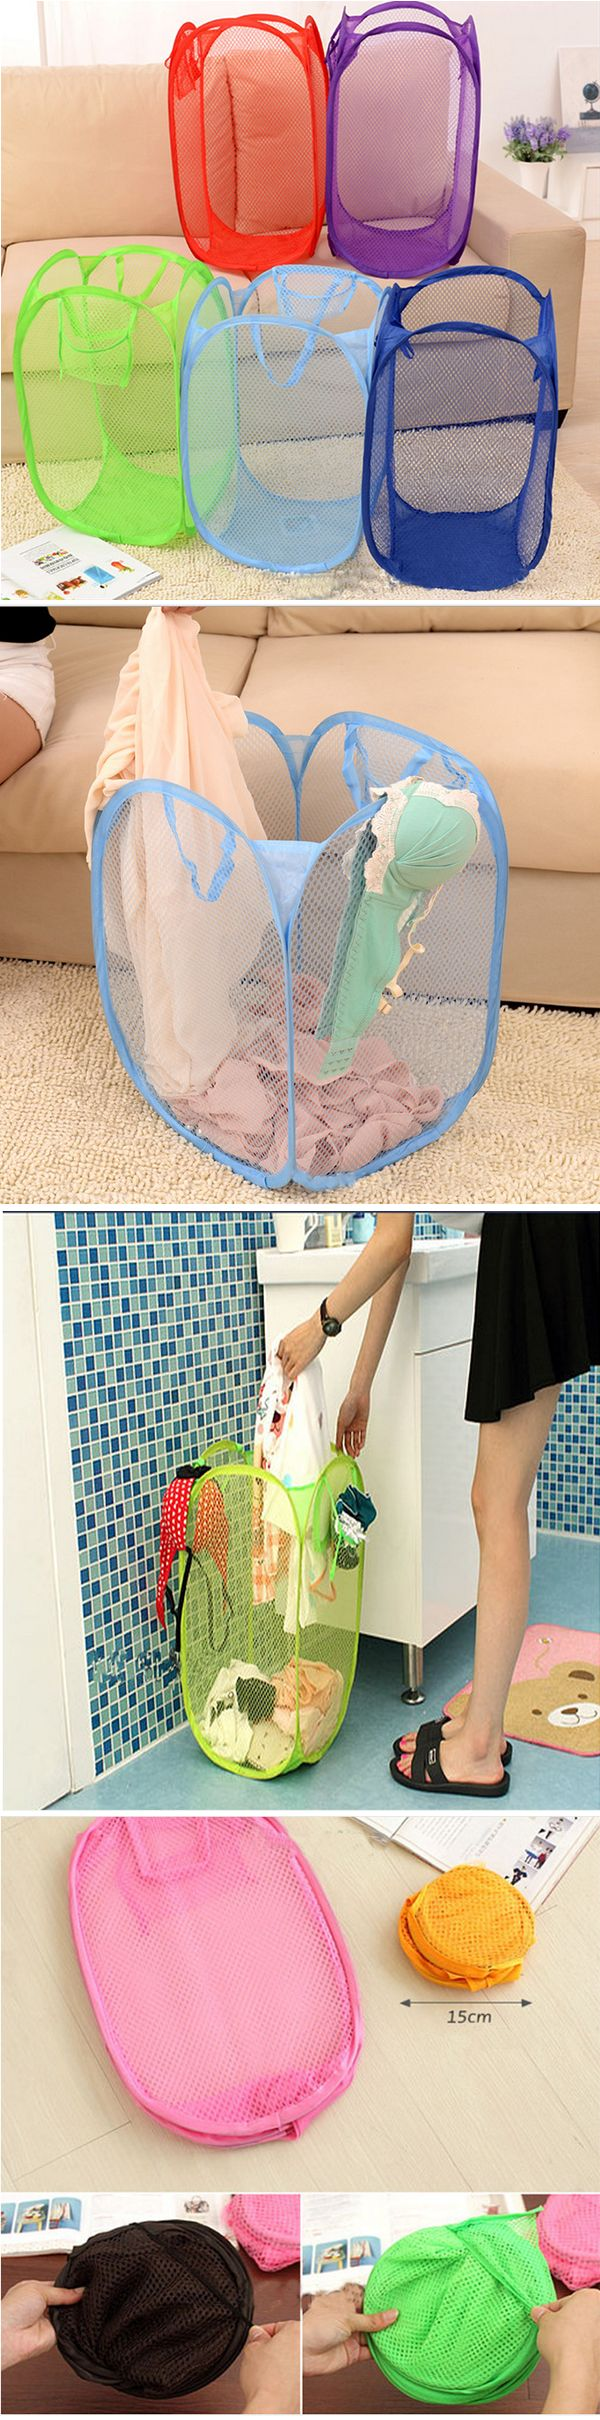 US$3.99 Nylon Foldable Washing Basket Clothes Mesh Laundry Bag Washing Drying Bags